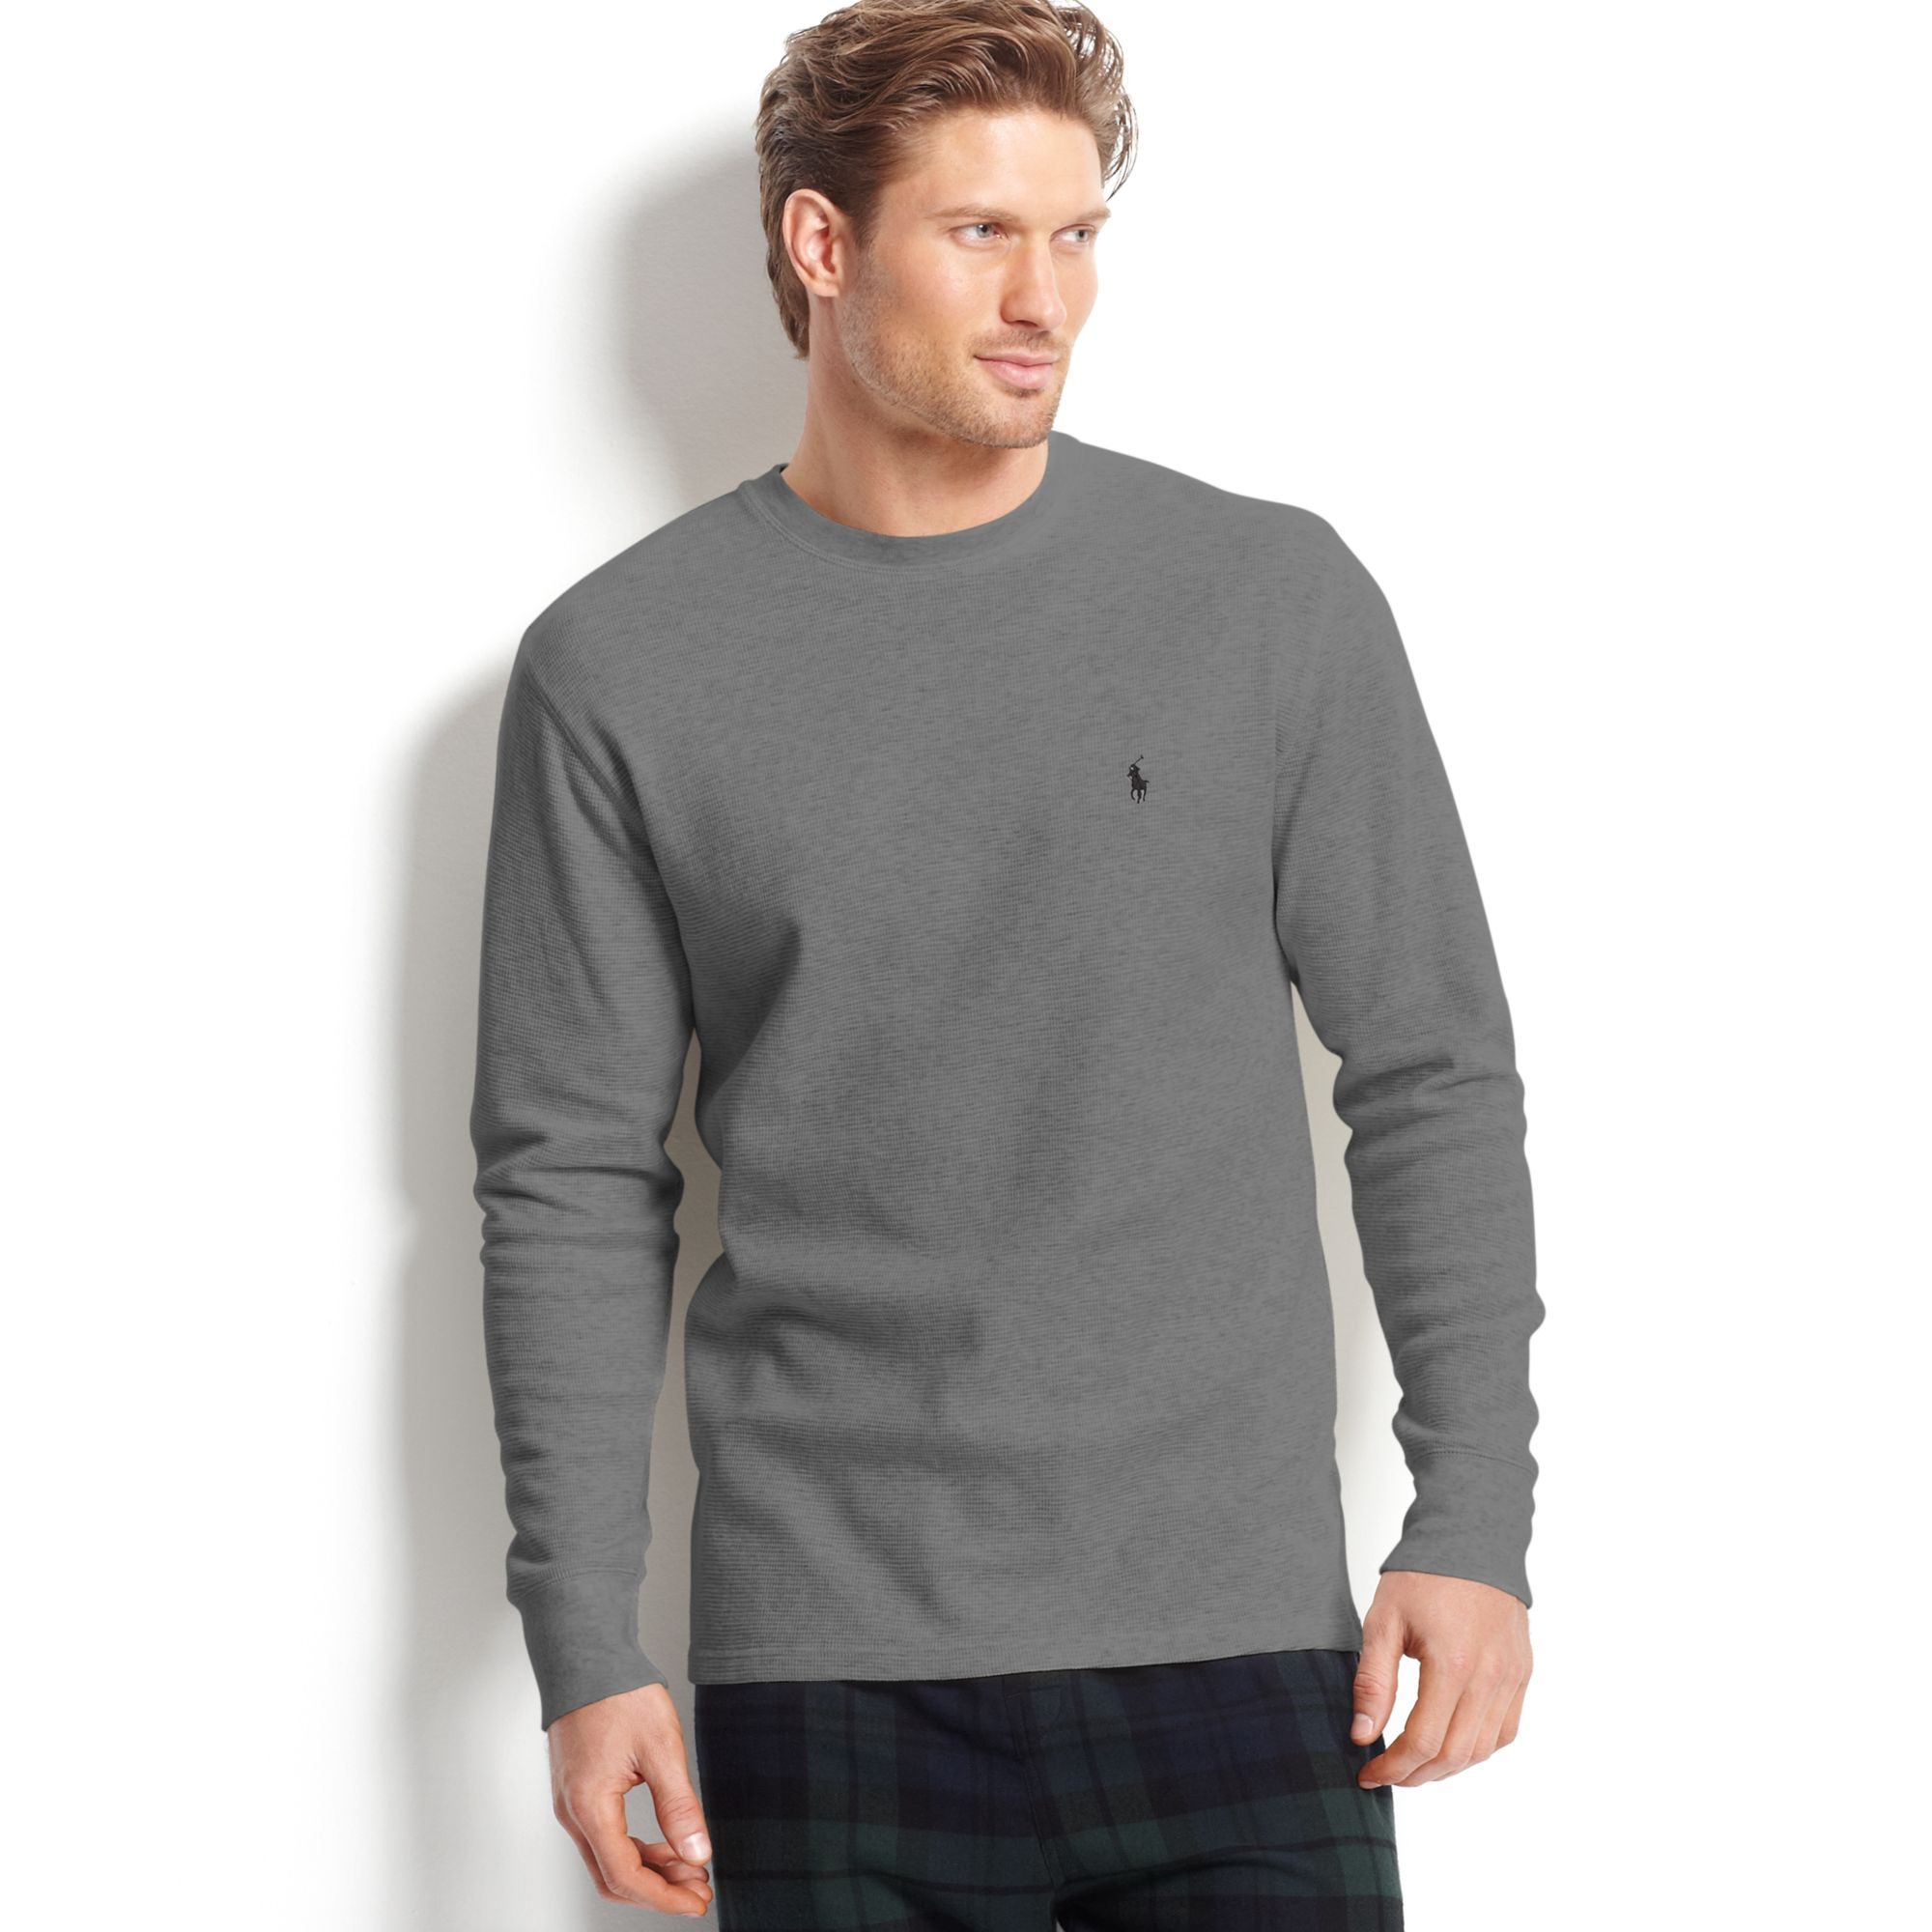 ed884399bae2a Lyst - Ralph Lauren Long Sleeve Crew Neck Waffle Knit Thermal Tshirt ...